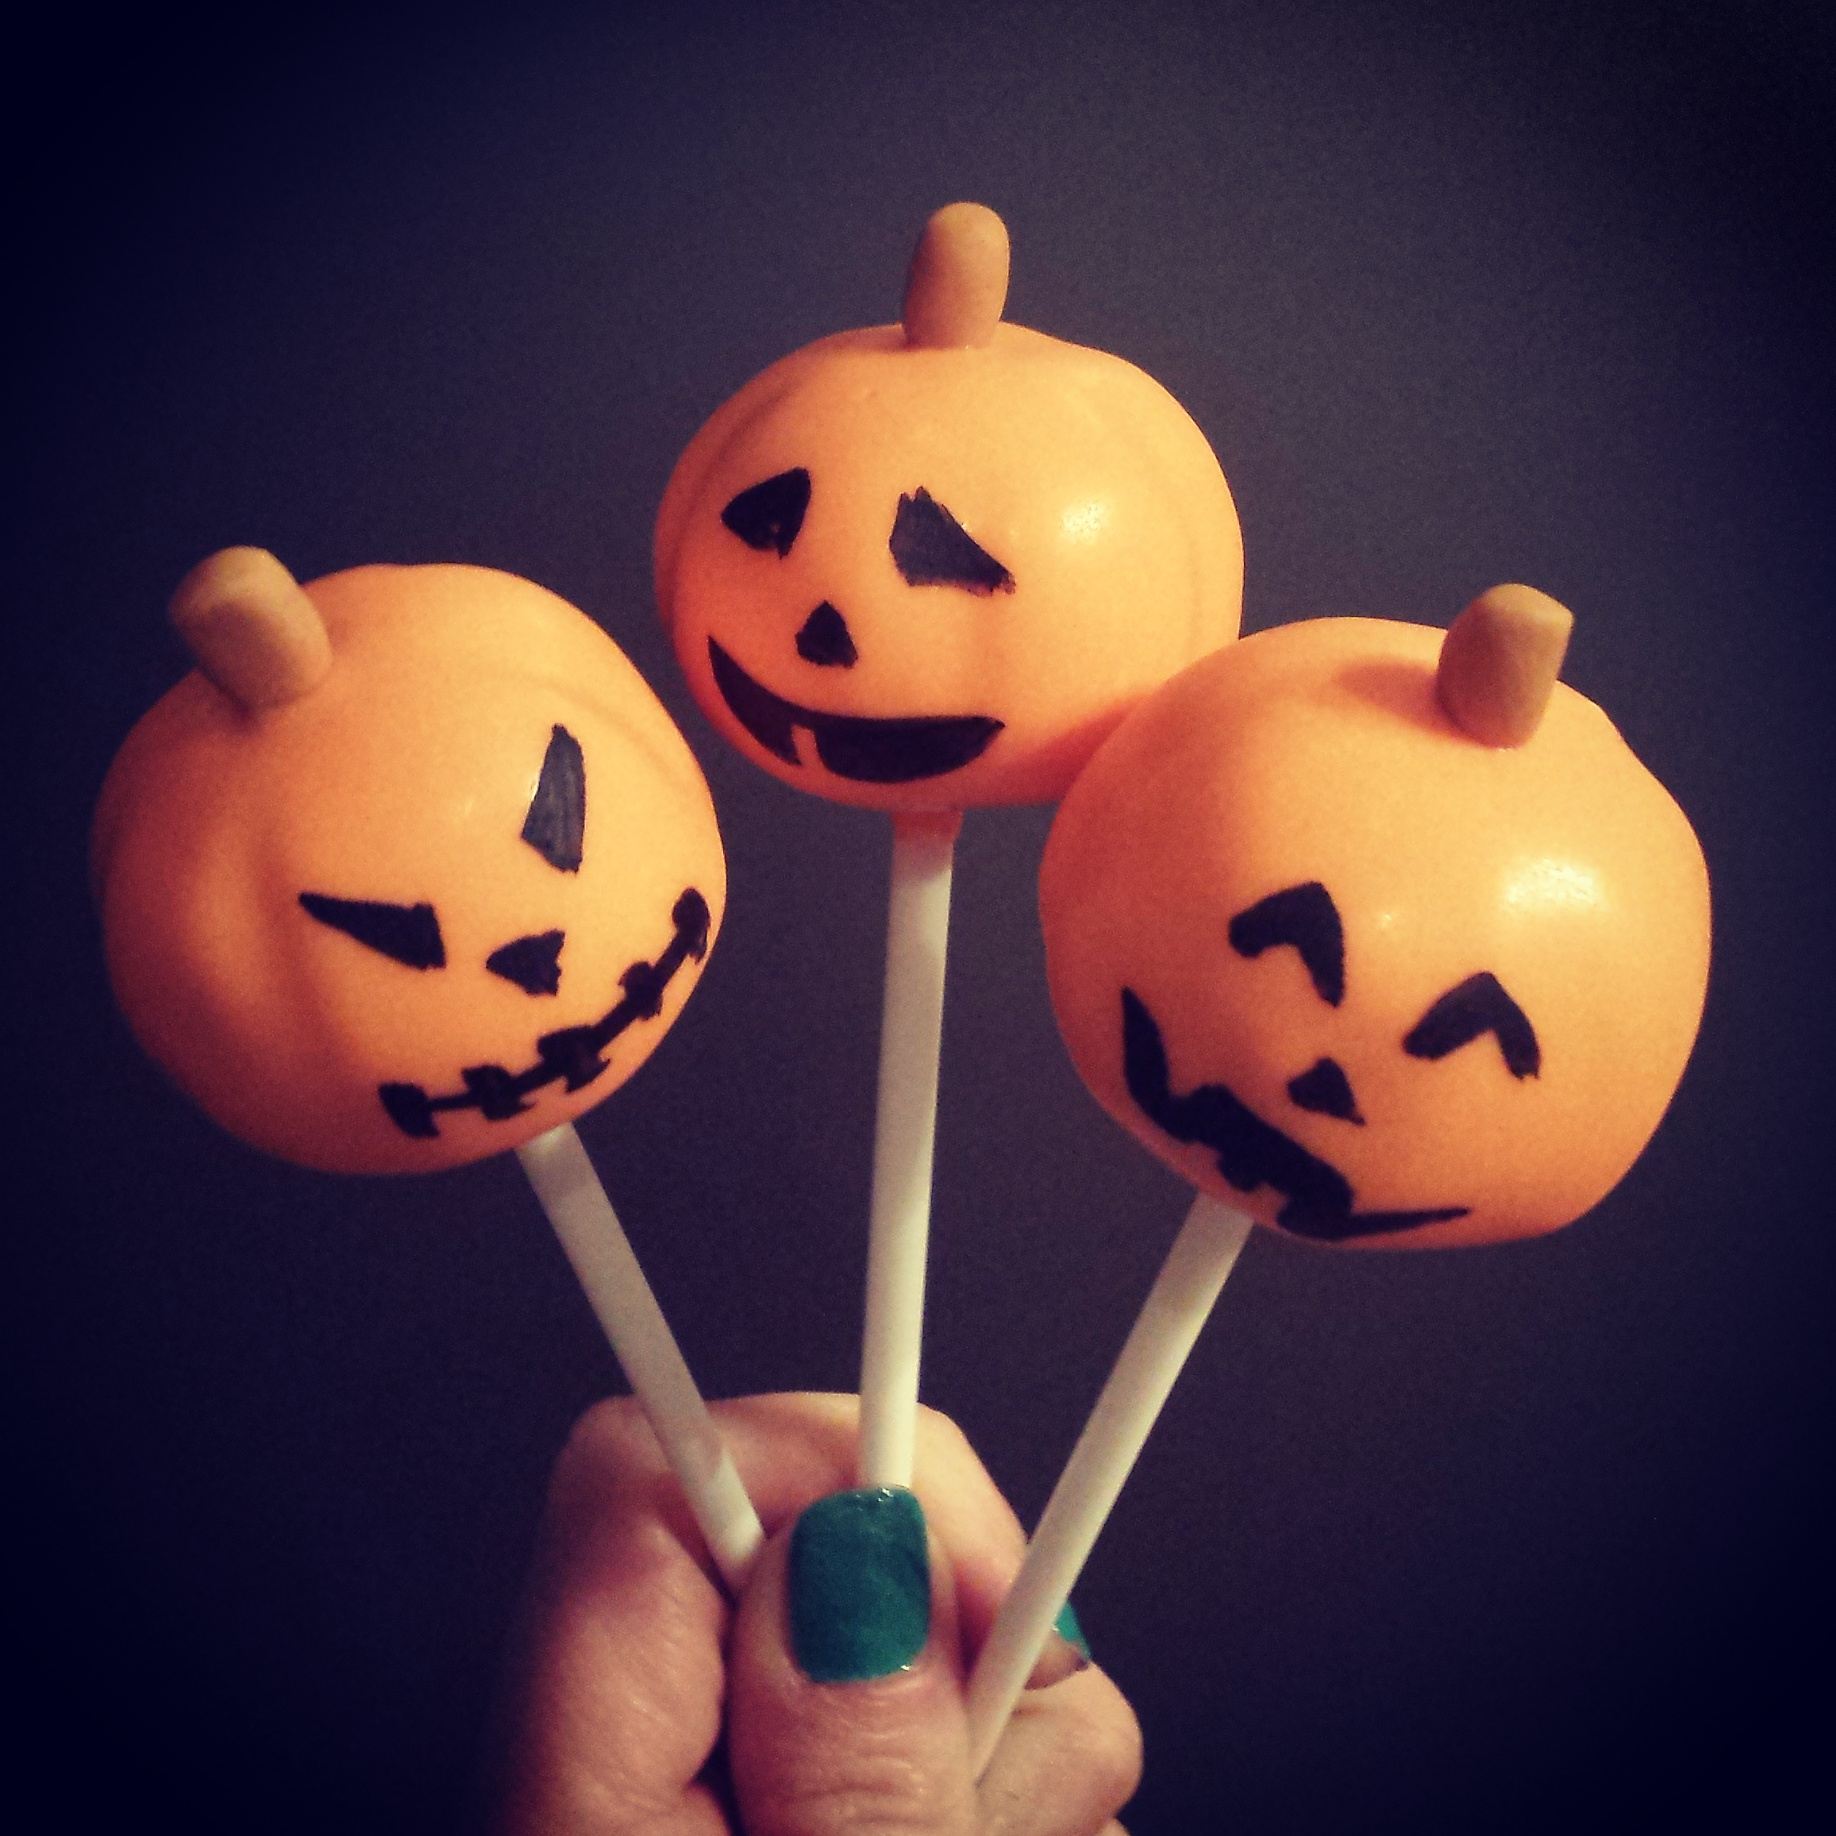 Delish Halloween pumpkin cake pops